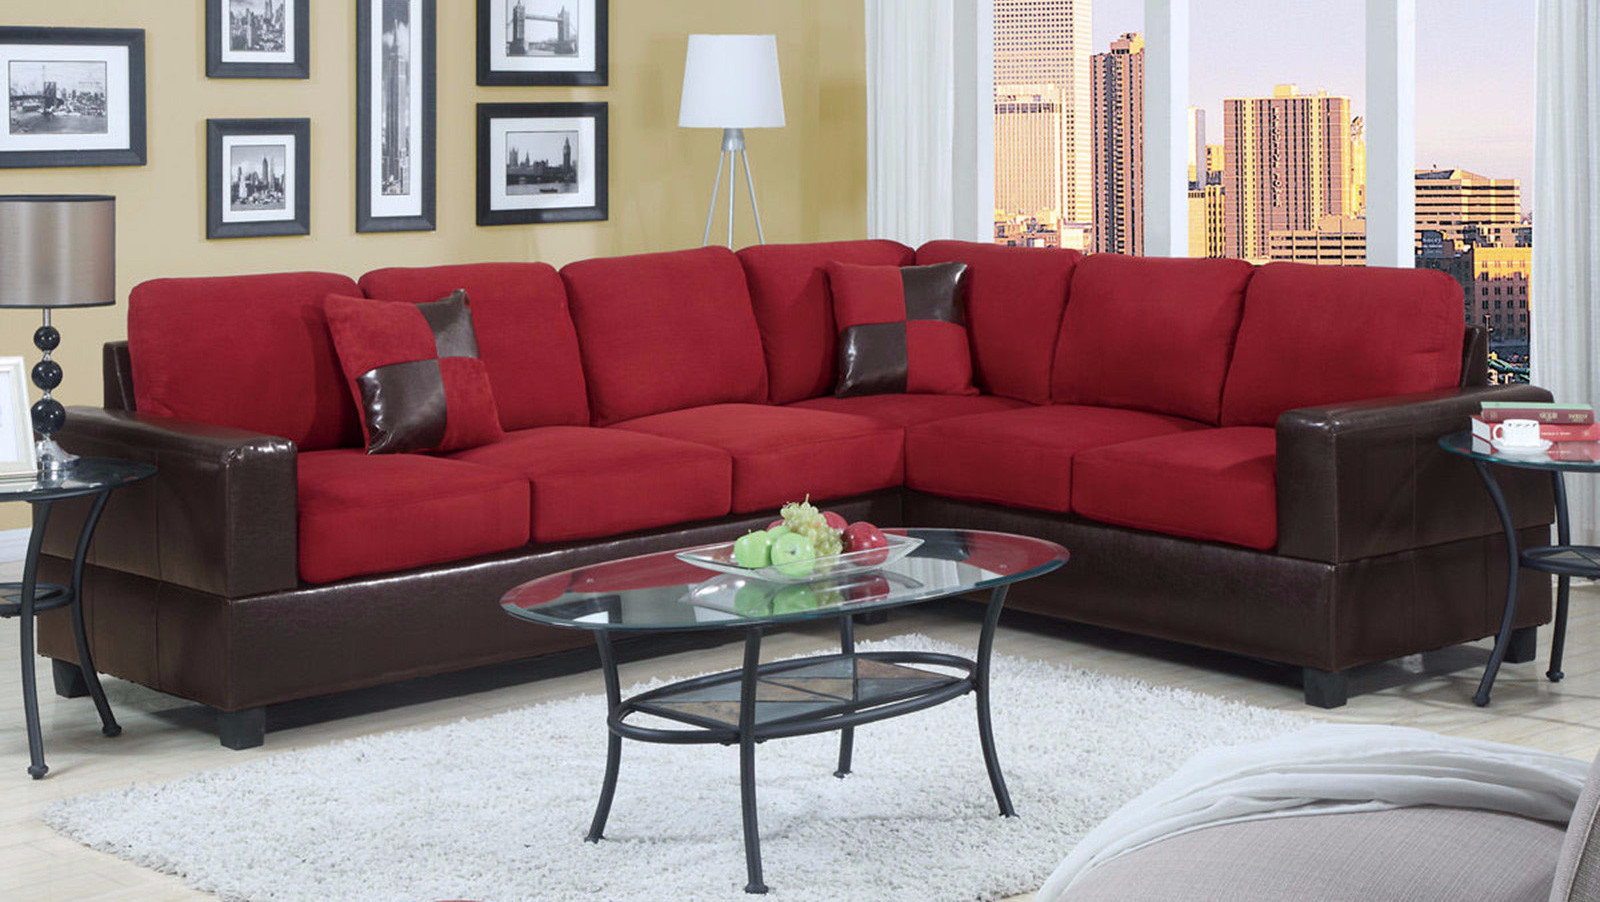 2 Piece Modern Large Microfiber and Faux Leather Sectional Sofa ...